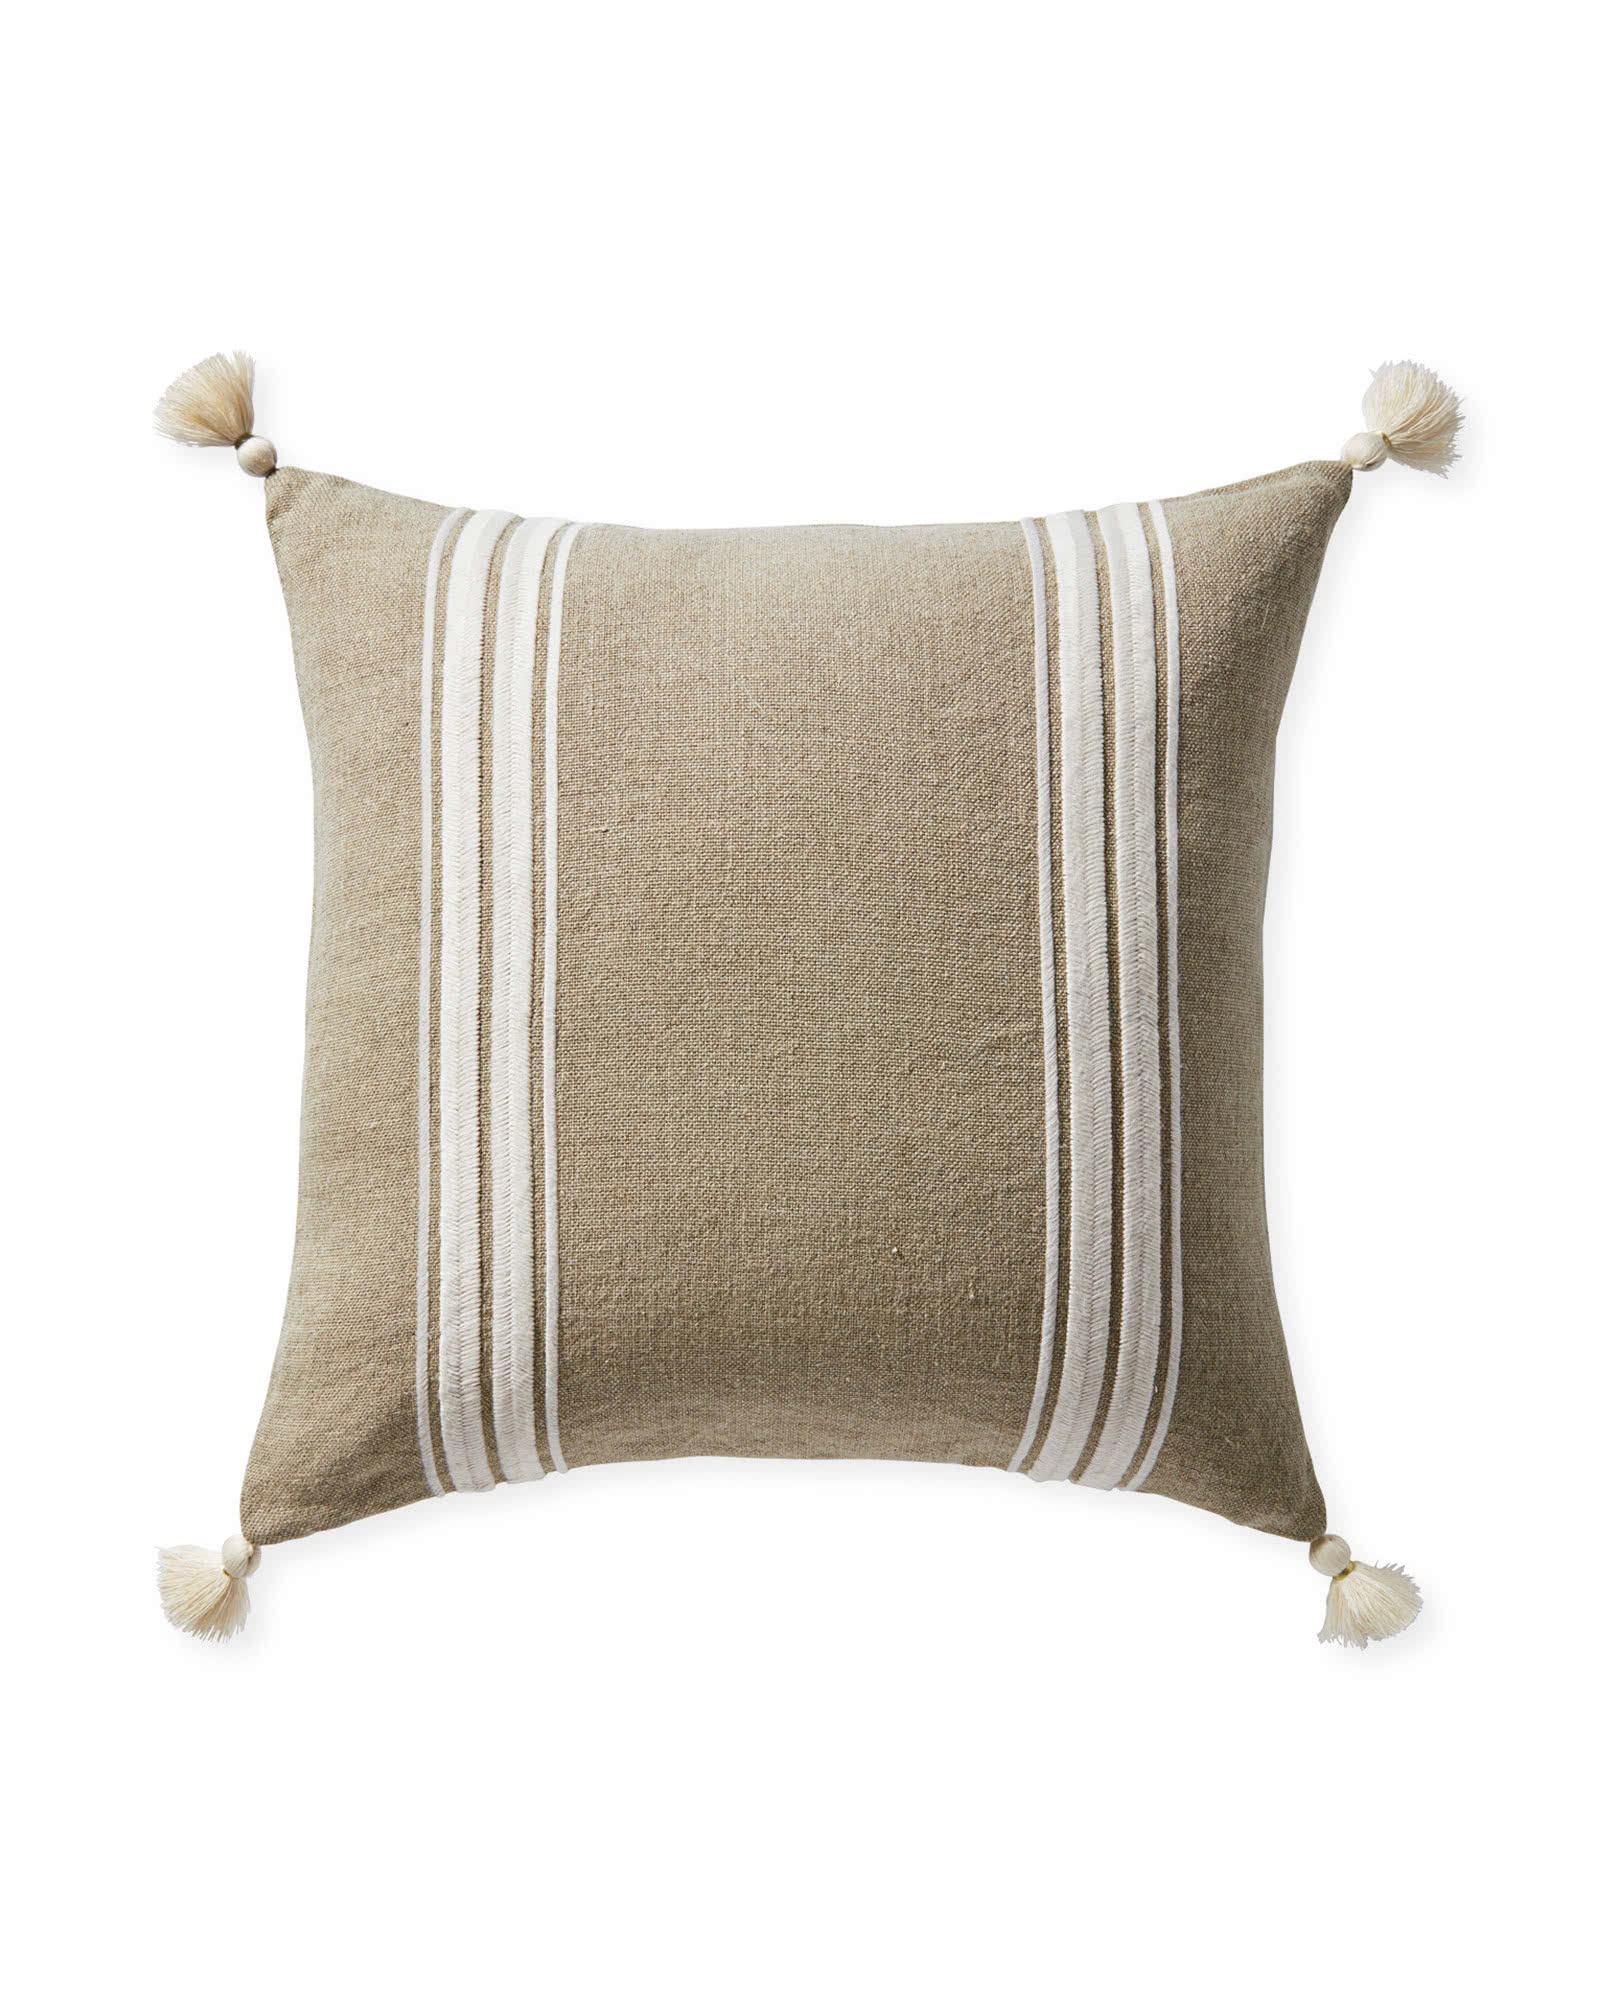 Addie Stripe Tassel Pillow Cover, Flax/Ivory